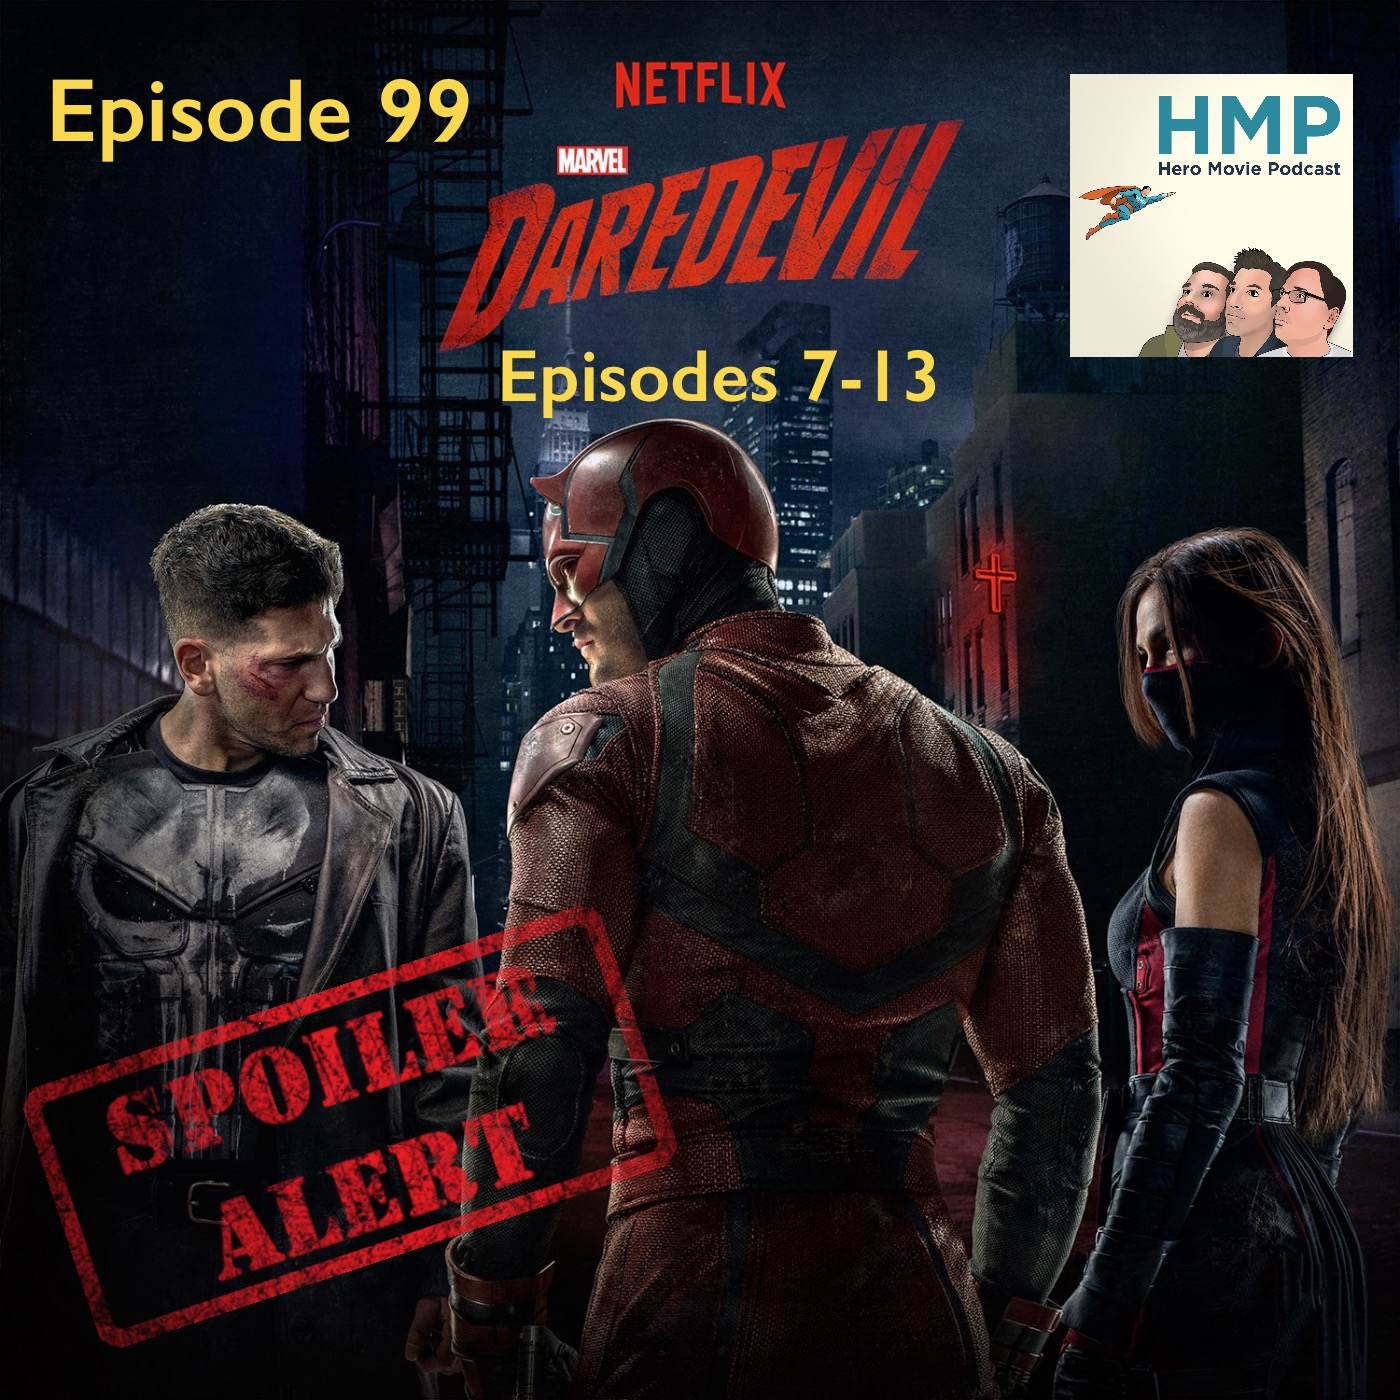 Episode 99- Marvel's Daredevil on Netflix- Season 2, Episodes 7-13